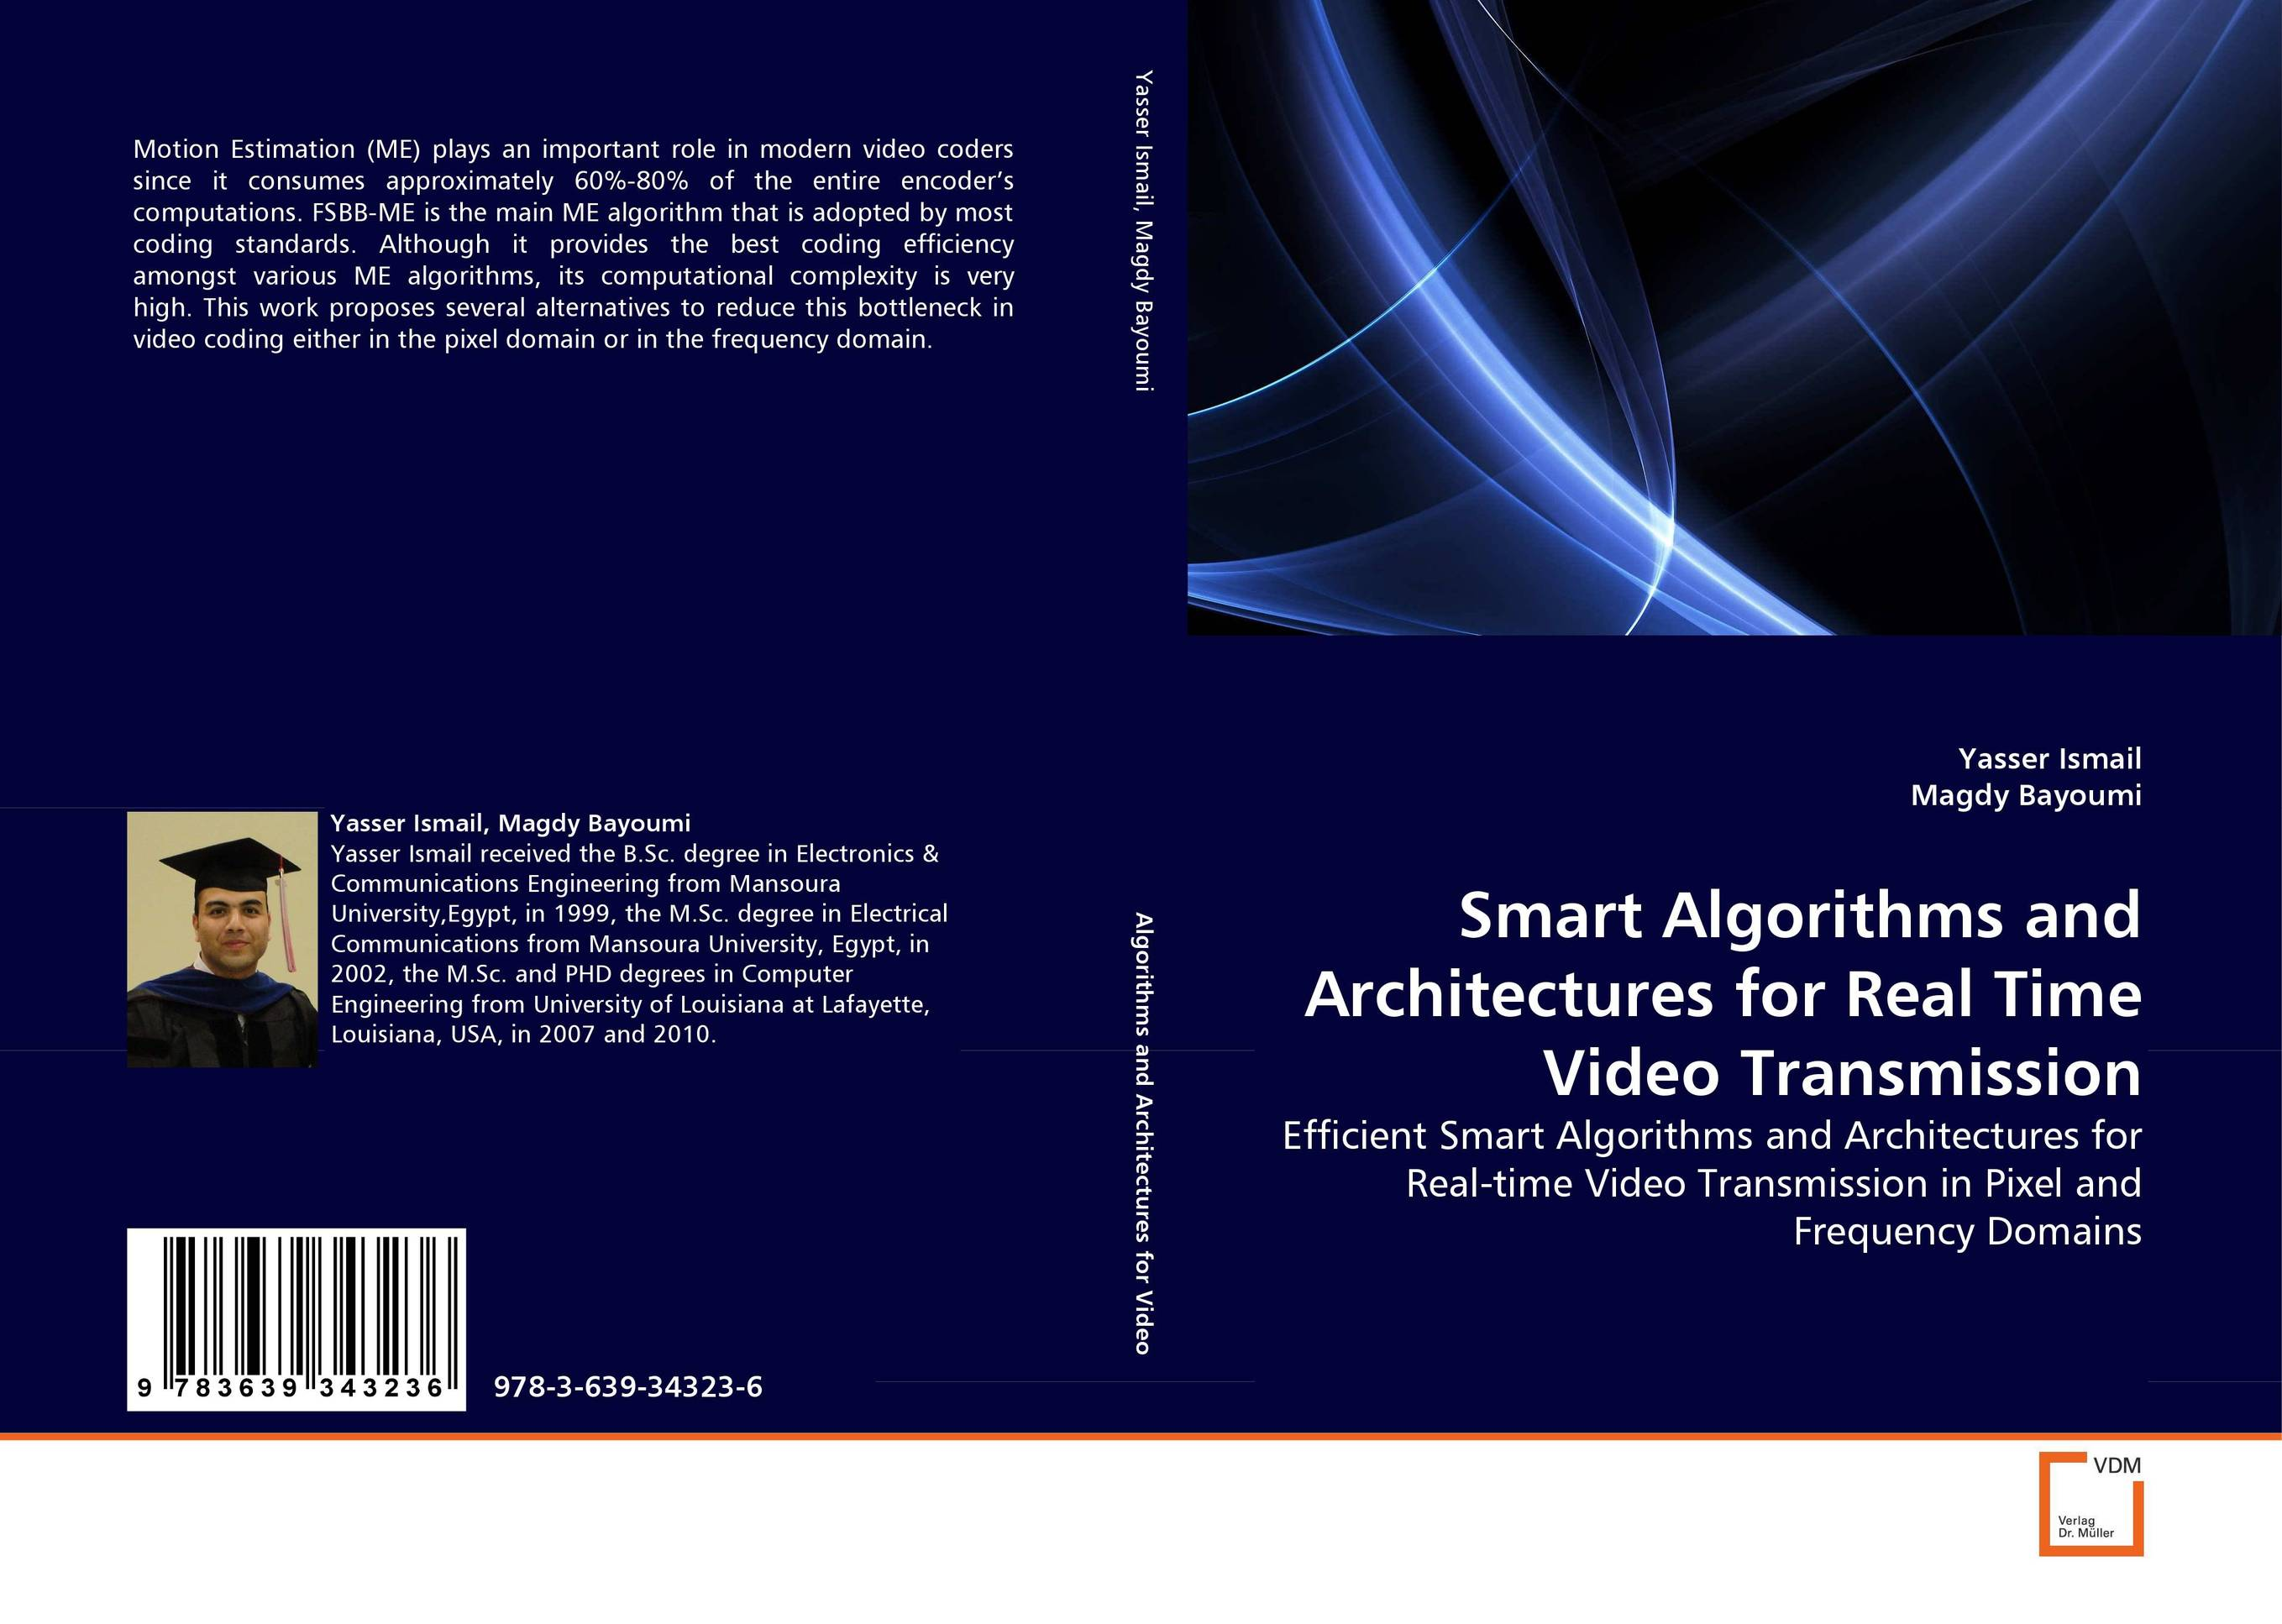 Smart Algorithms and Architectures for Real Time Video Transmission снегоуборщик patriot ps 2300 e [426302222]